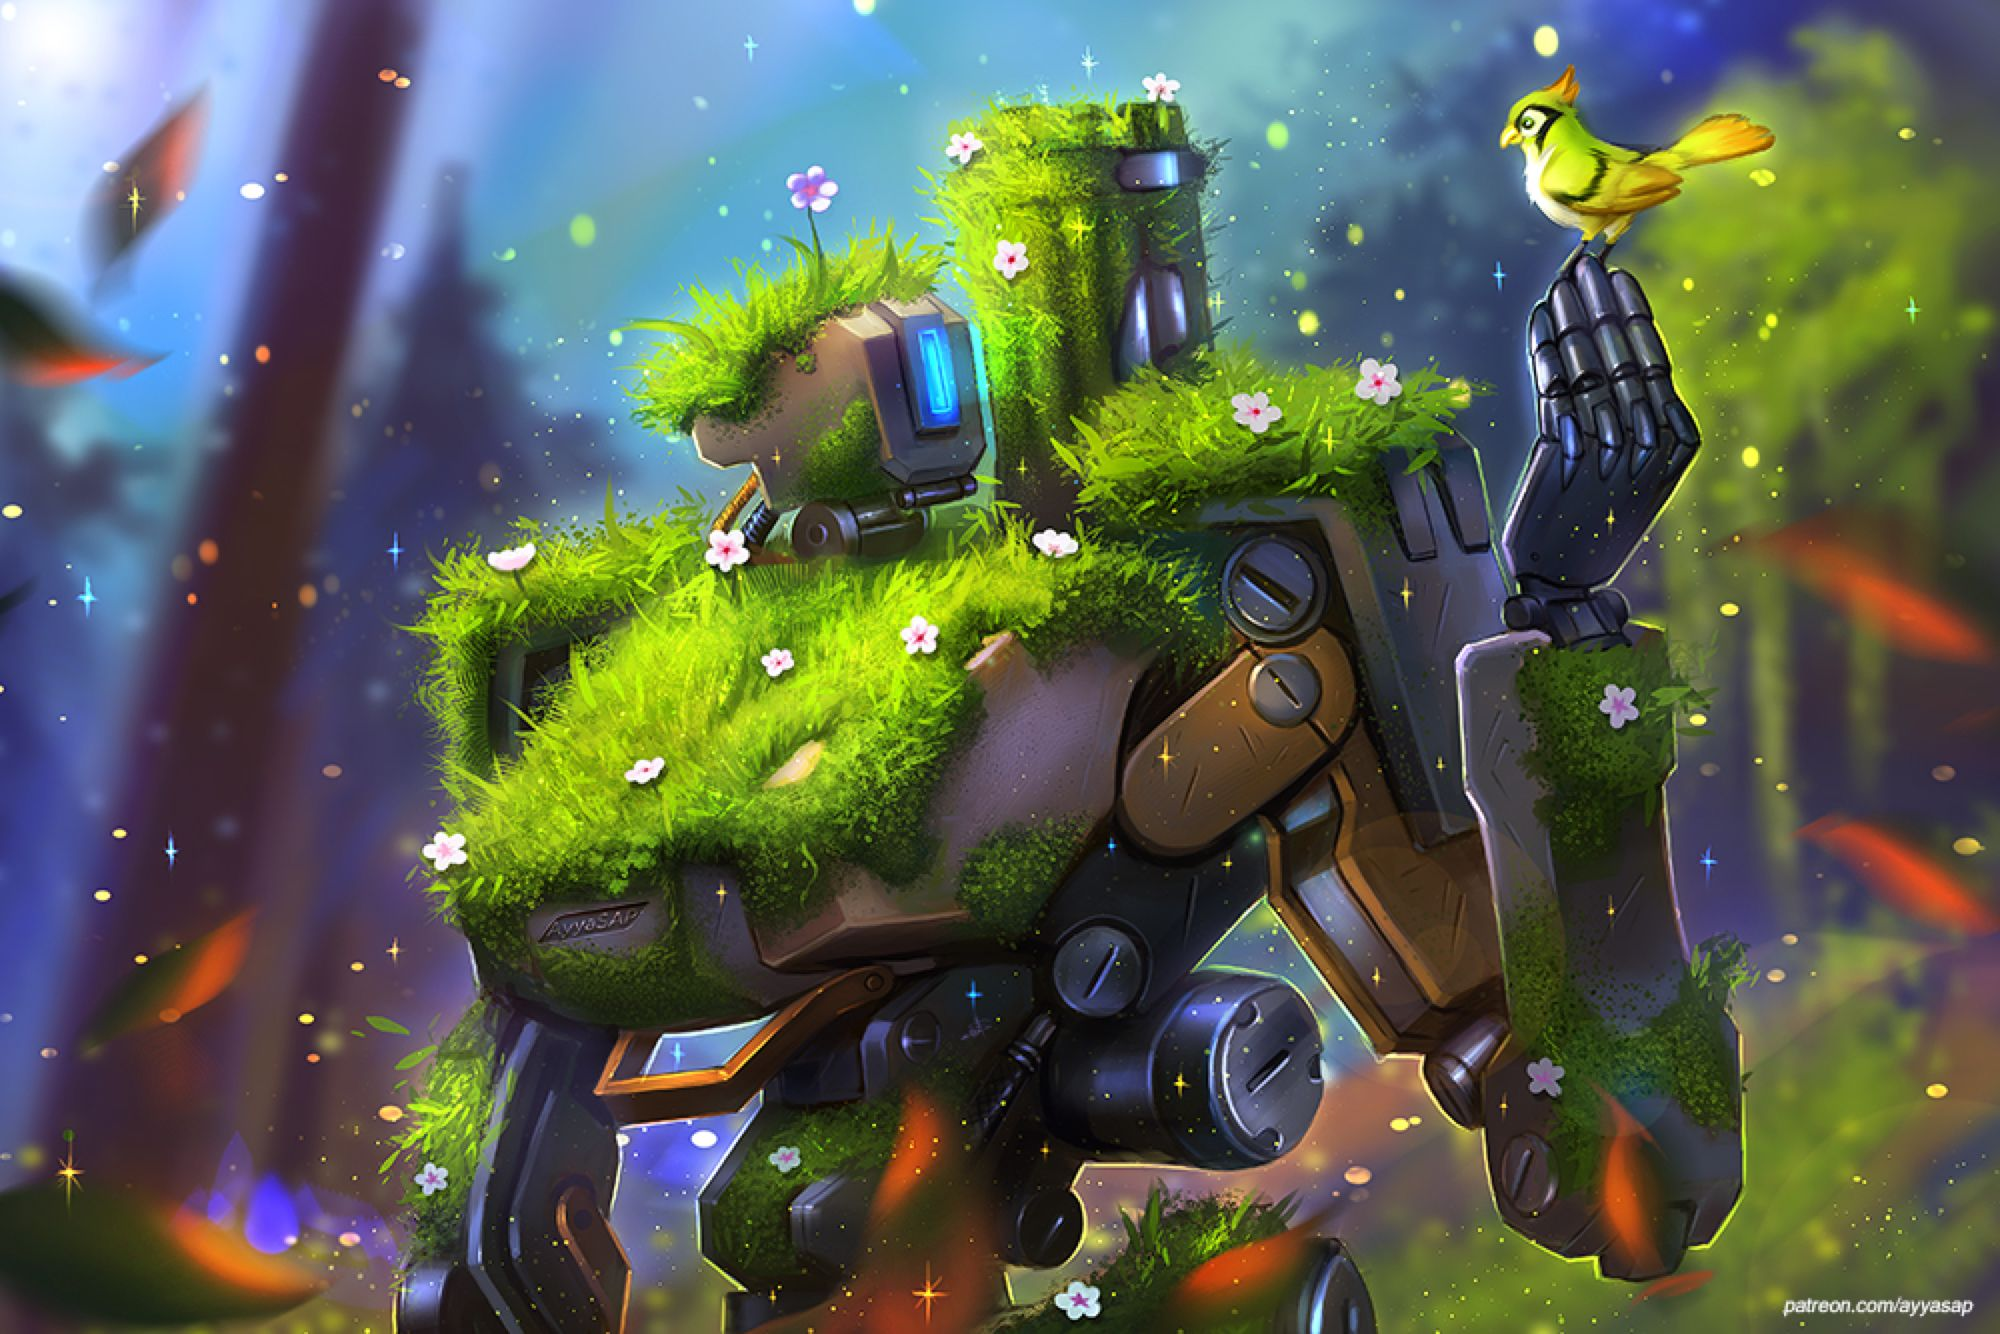 Bastion And Ganymede Commission By Ayyasap On Deviantart Overwatch Wallpapers Overwatch Fan Art Medieval Artwork